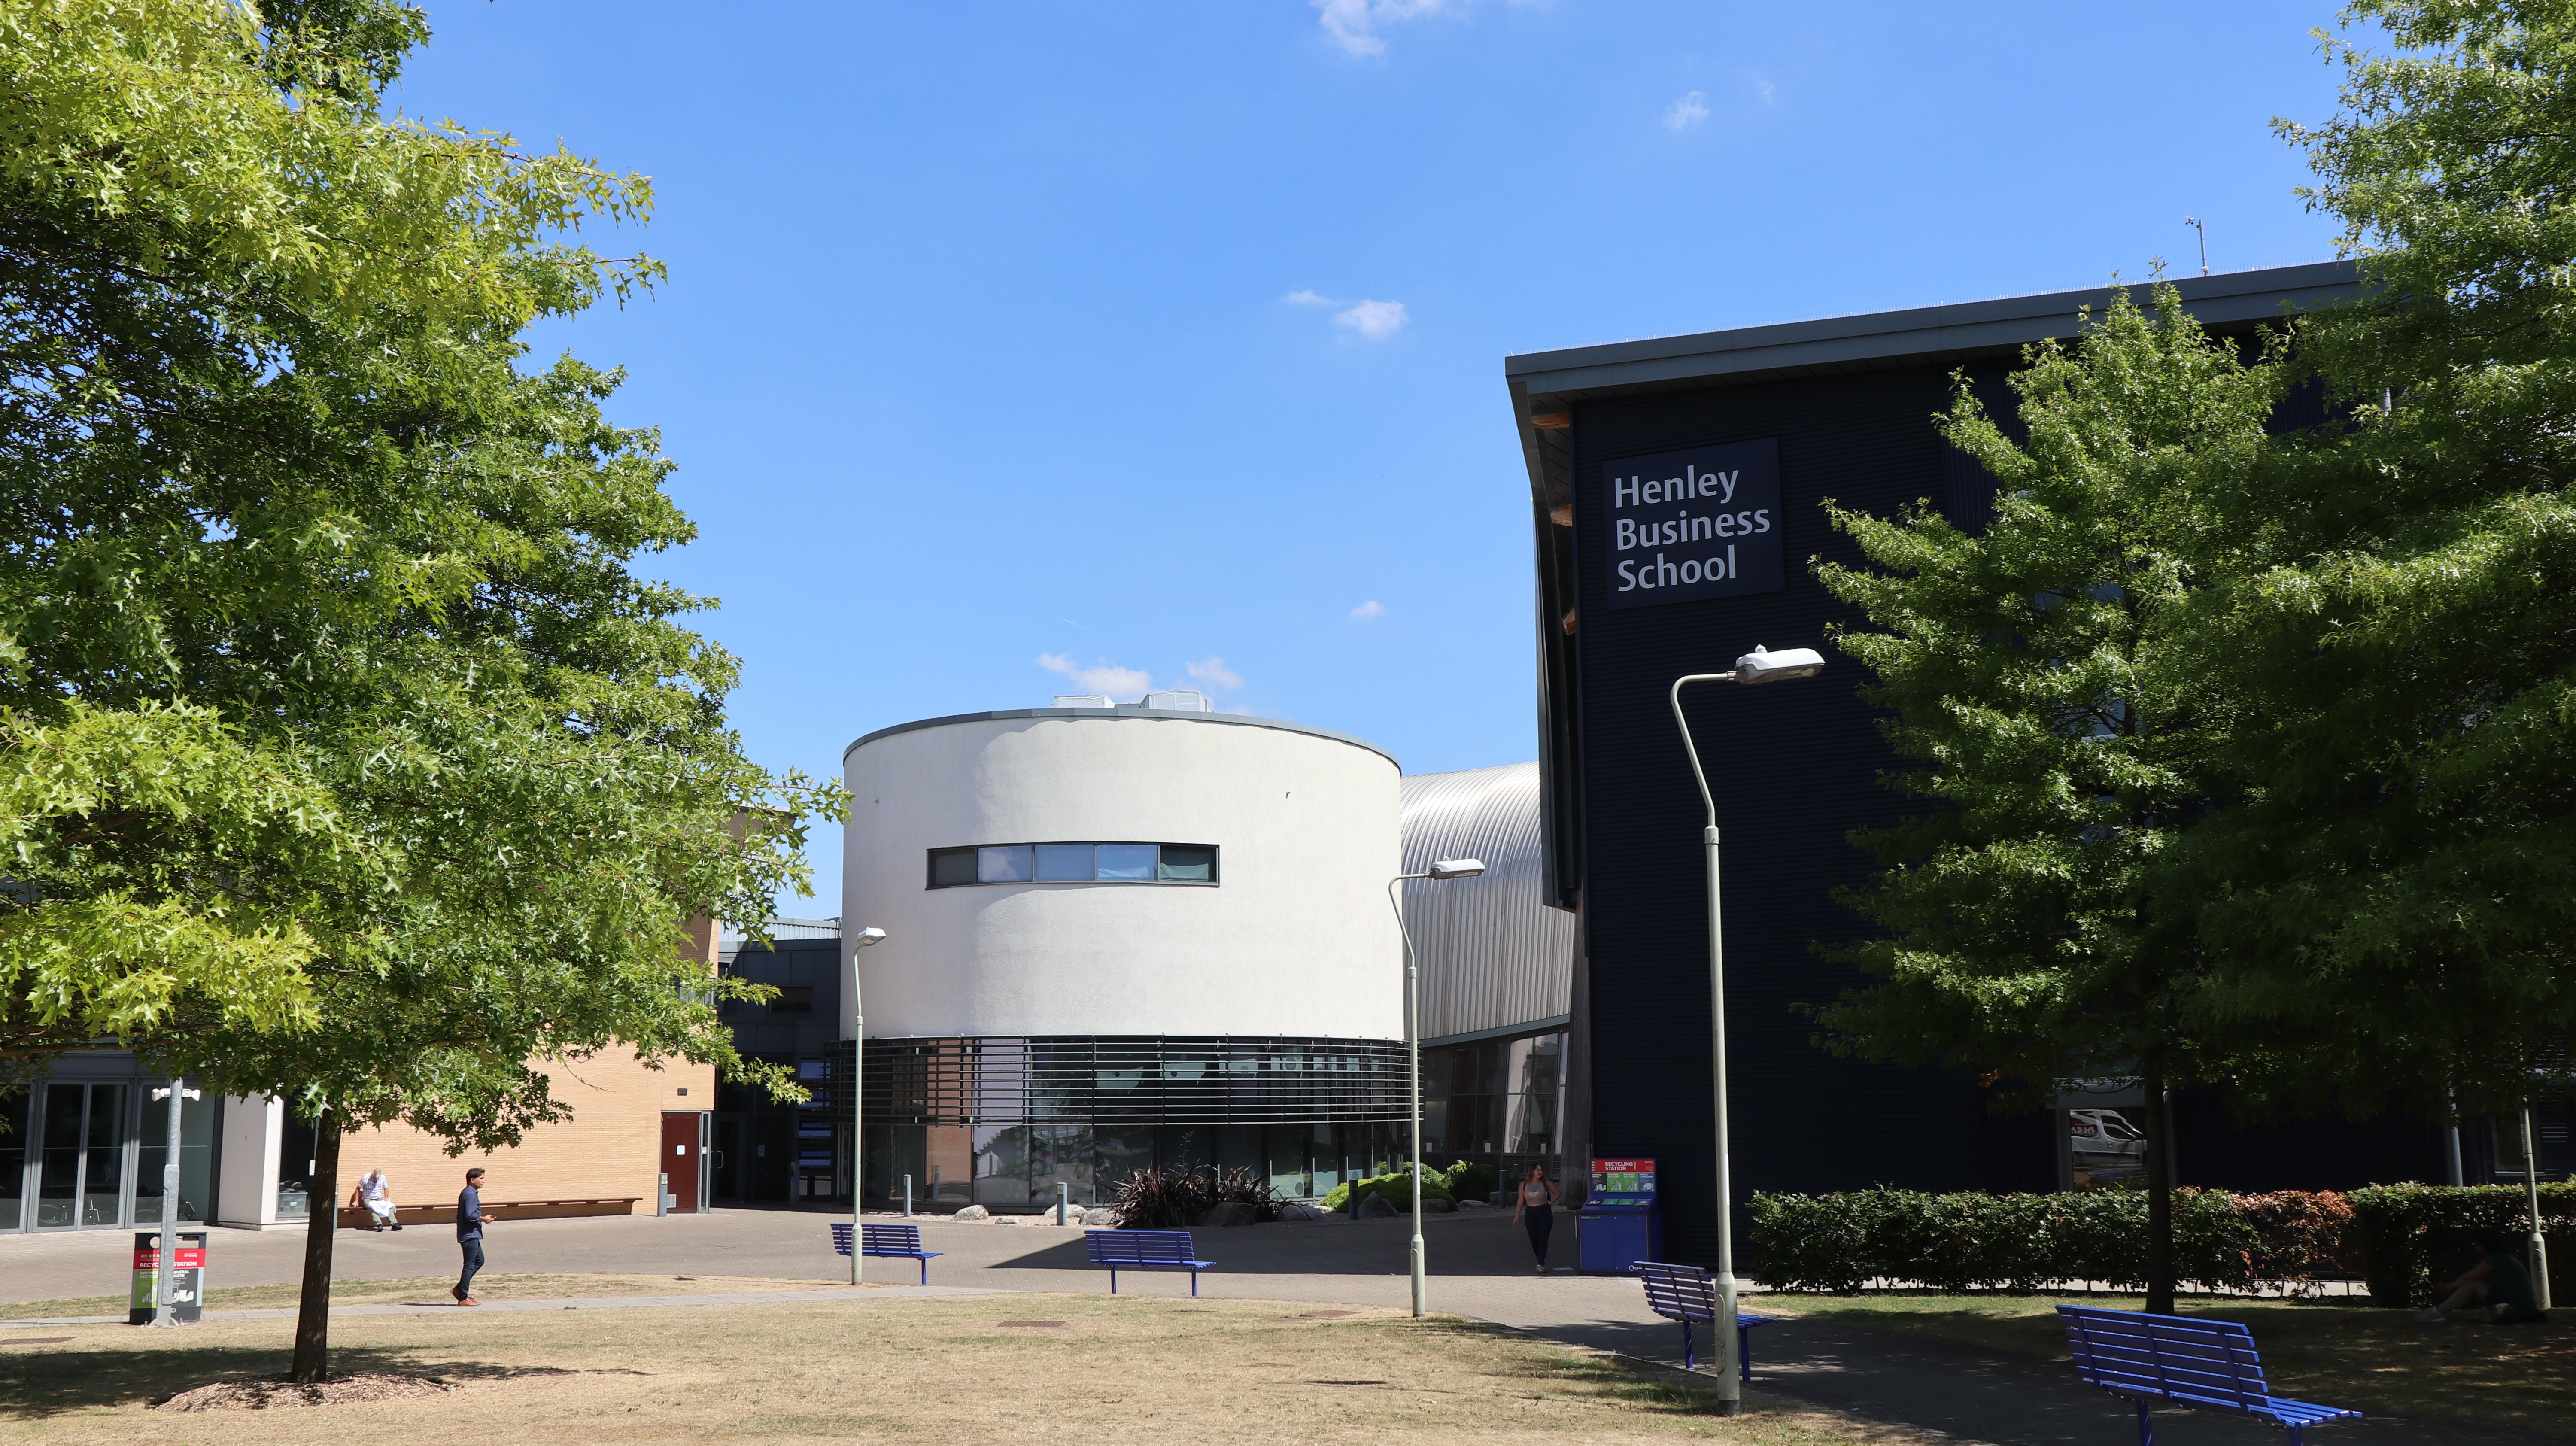 Whiteknights campus and accommodation OPEN for Autumn term 2020